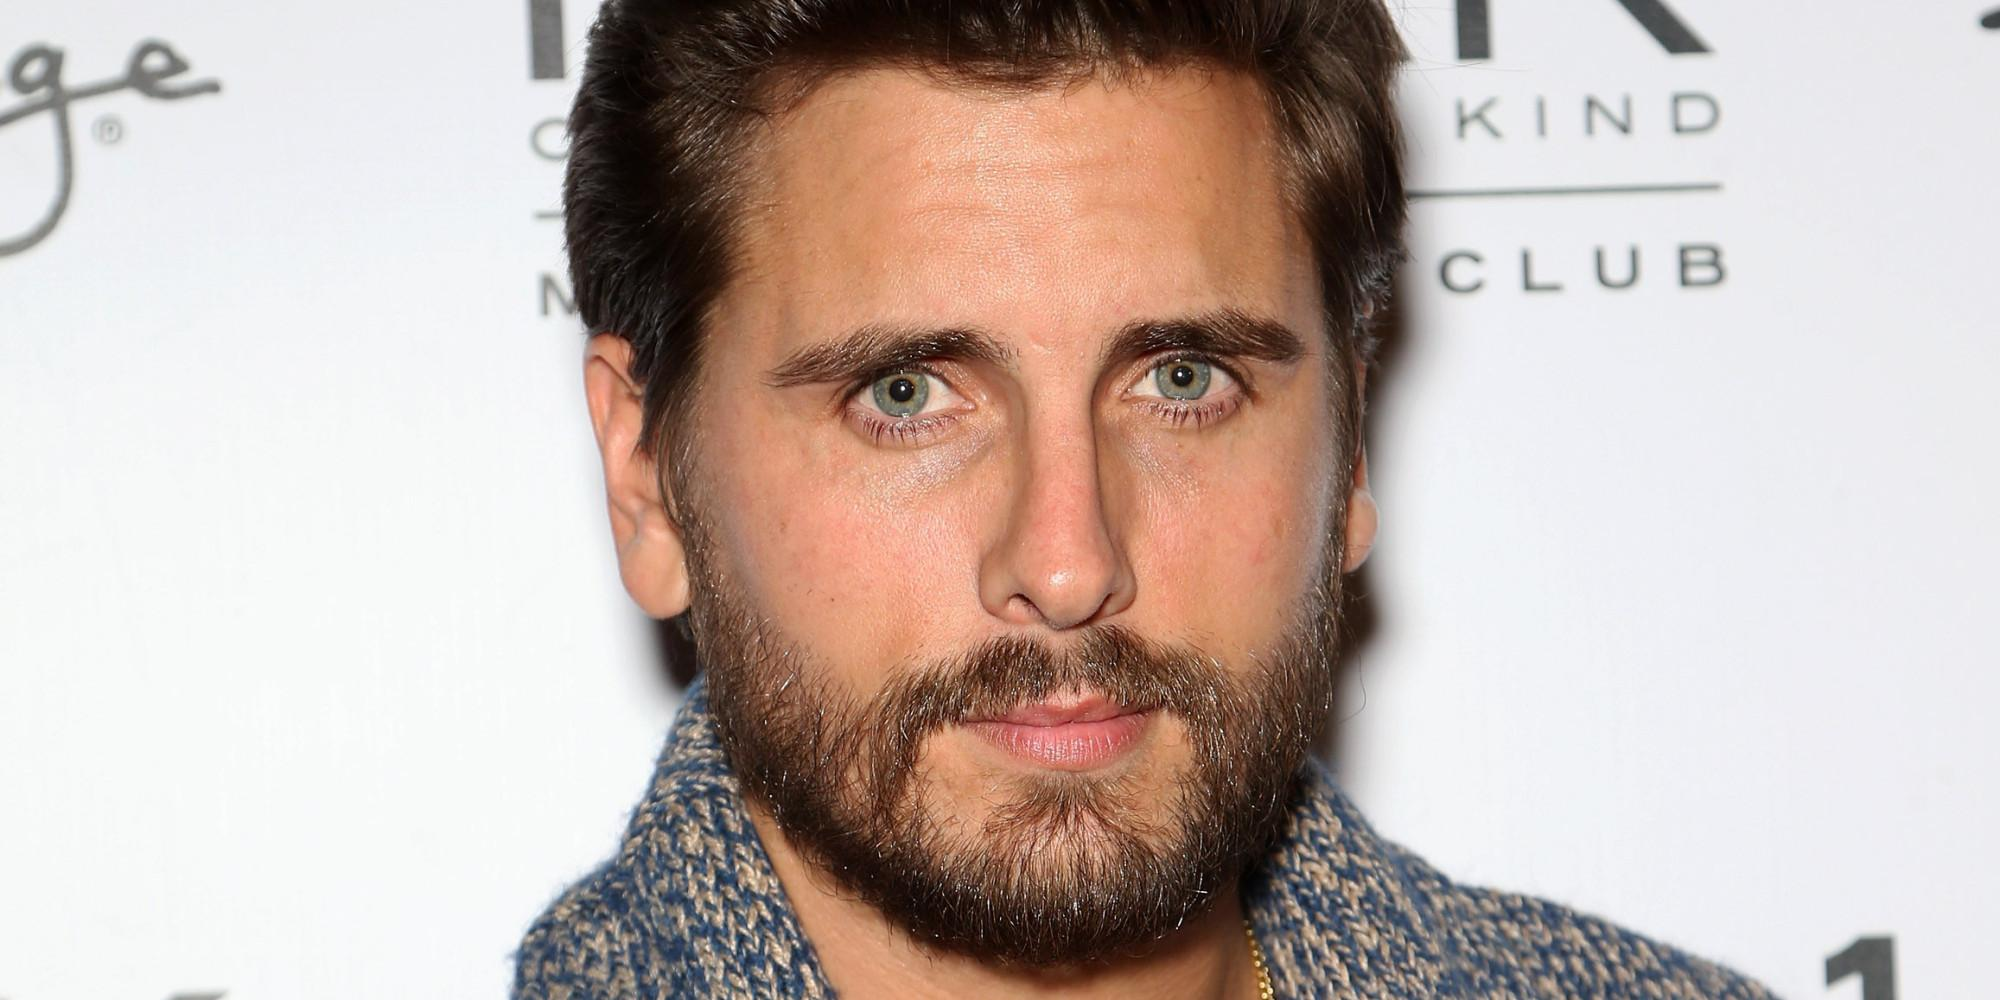 Scott Disick Reportedly Partied With Friends Just Weeks After Third